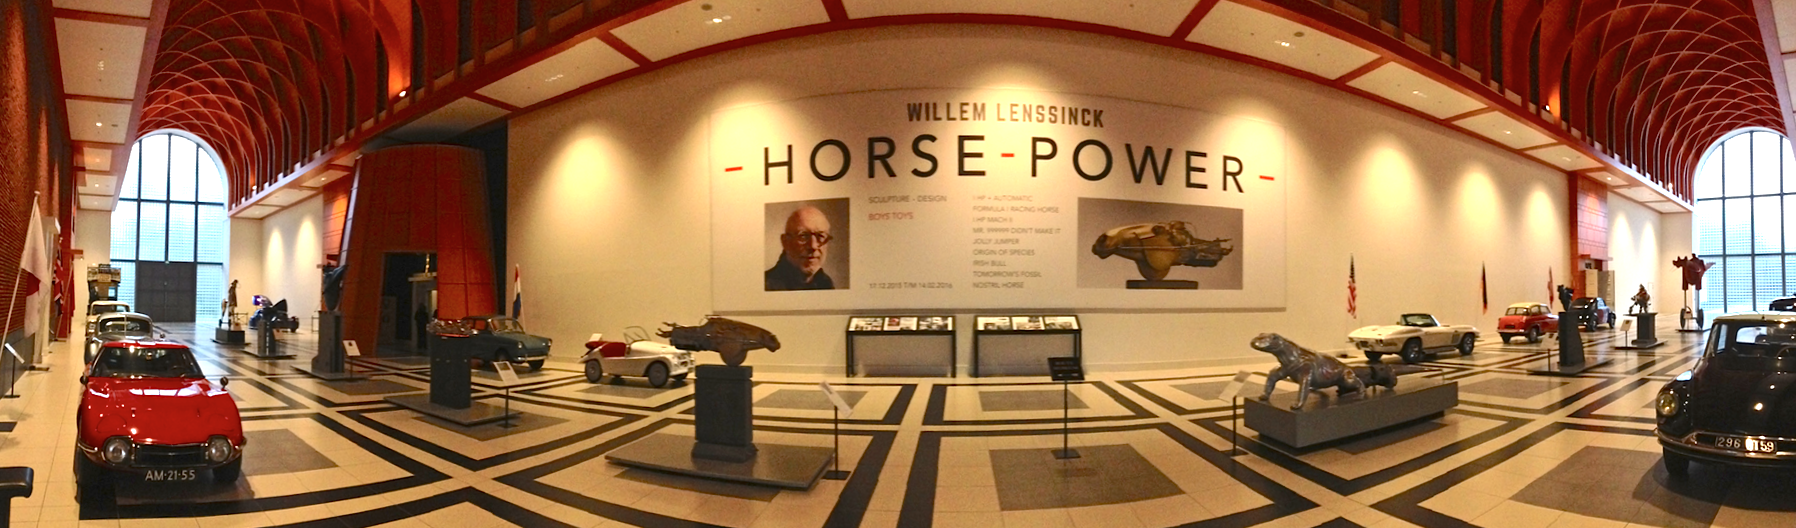 Currently there is wonderful display of  Willem Lenssinck  sculptures displayed in the main entrance hall (which is glorious in itself!)- seriously fabulous stuff! Love LOVE!